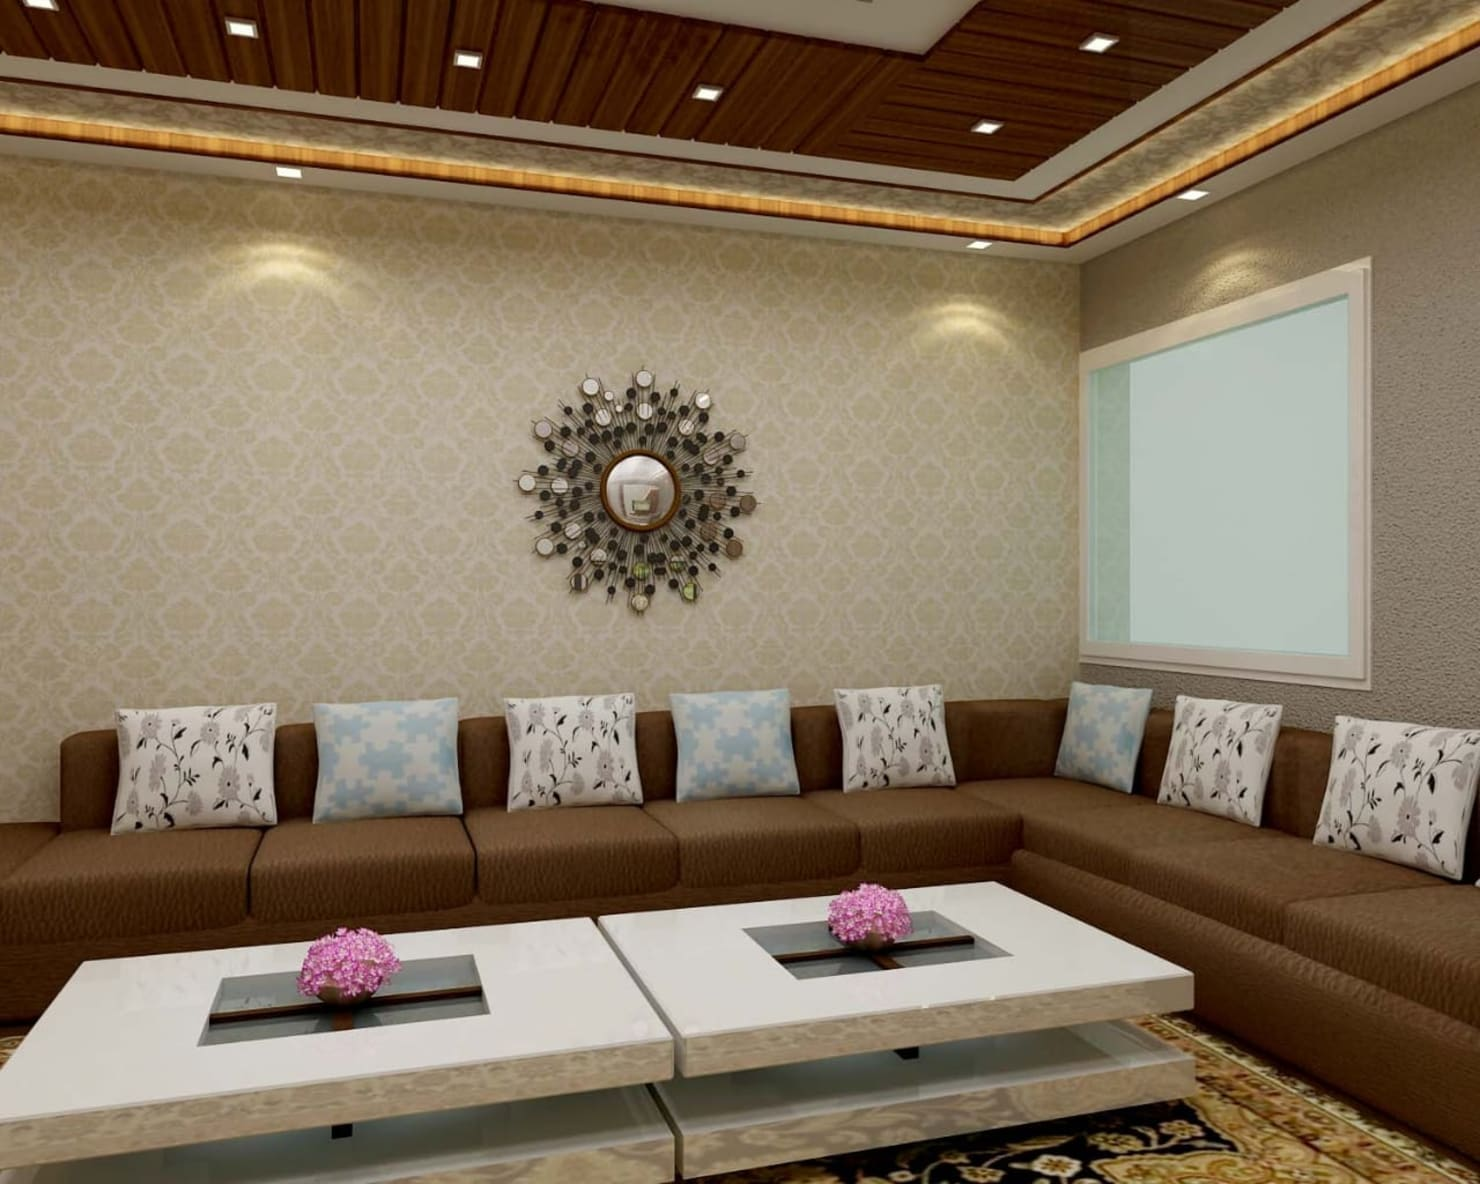 A Ghaziabad home with spacious interiors